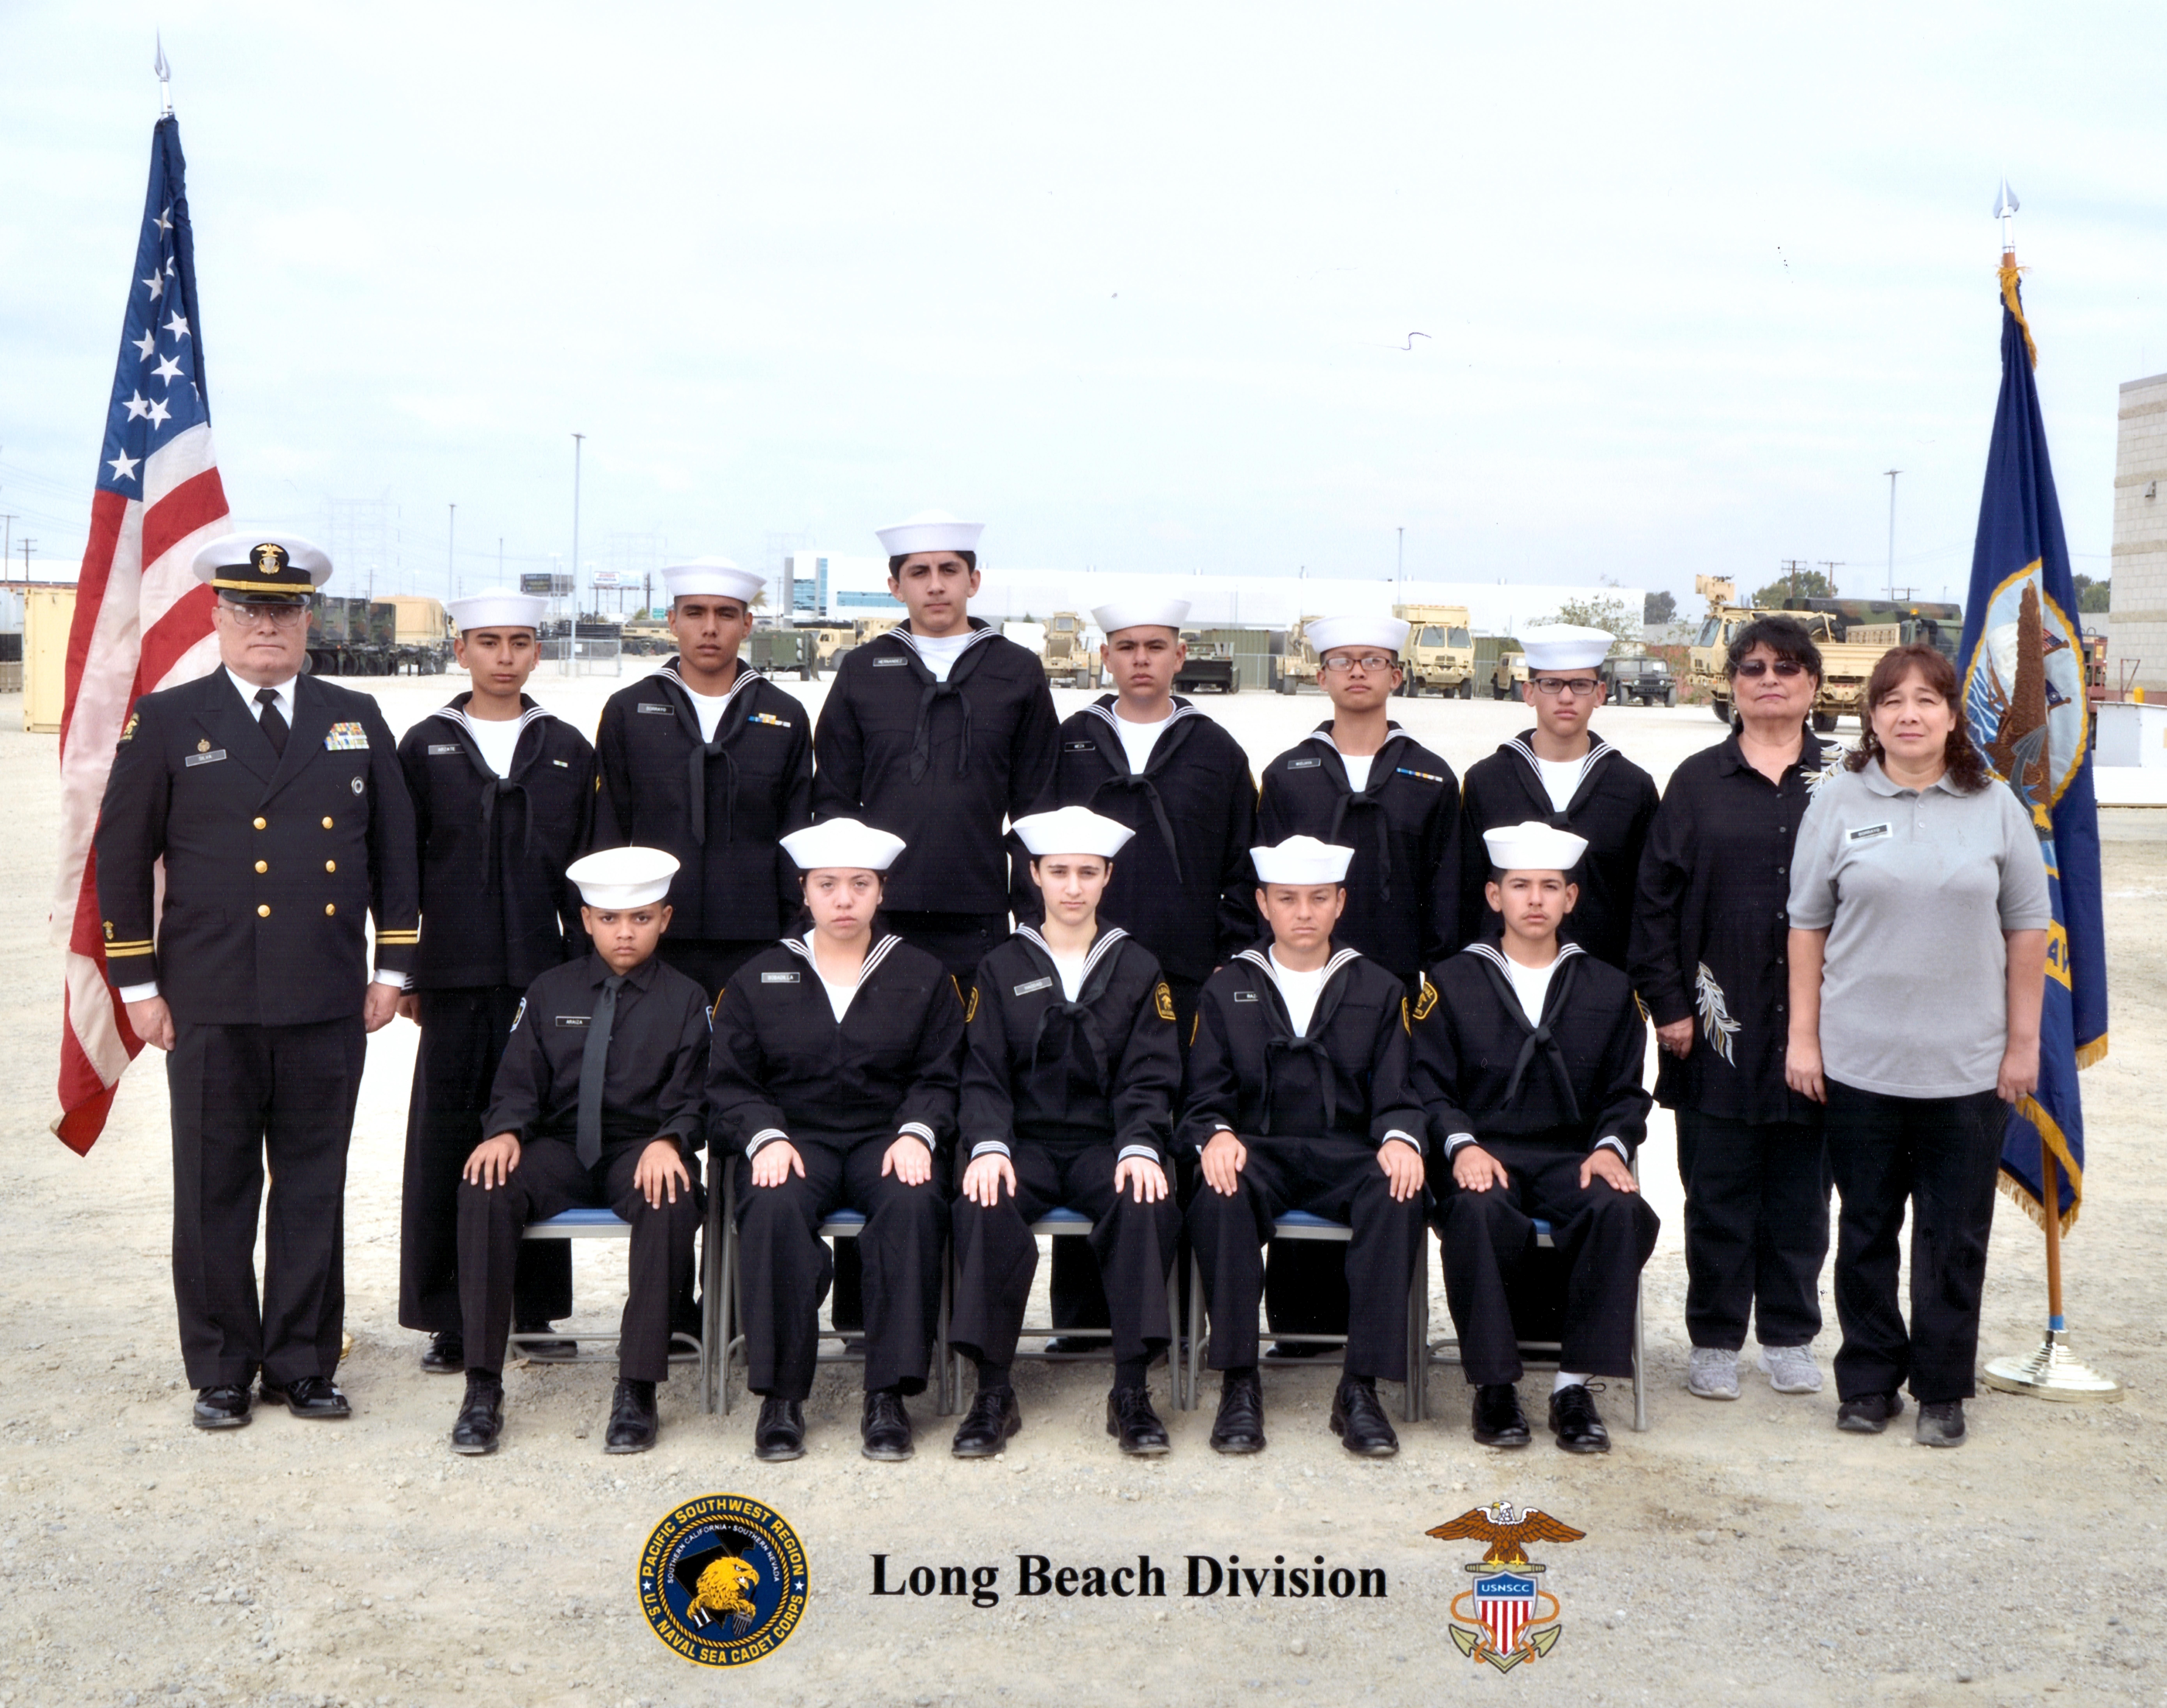 LONG BEACH DIV. Group Photo April 7, 2018 001